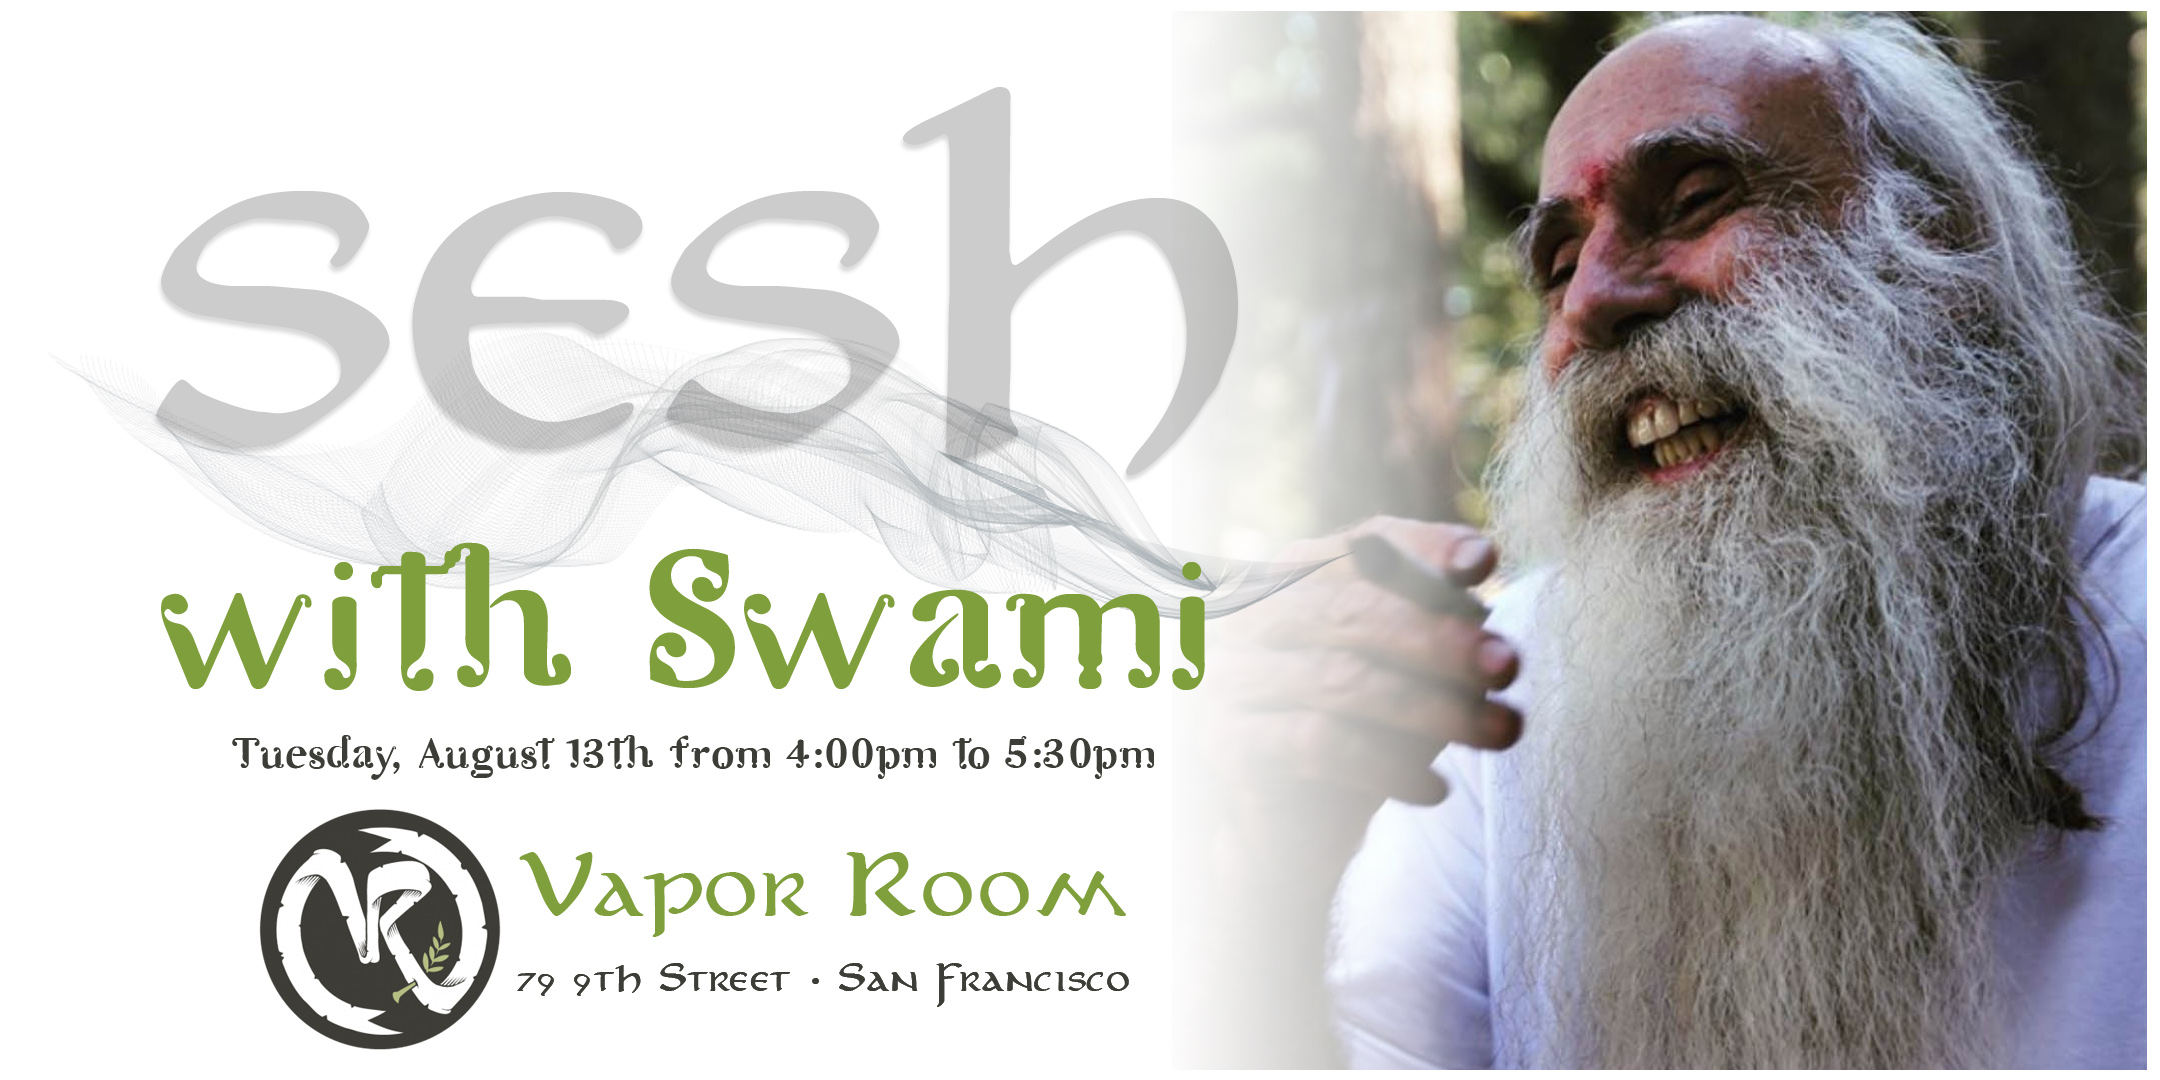 Consumption Friendly Q&A Sesh with Swami at Vapor Room in San Francisco